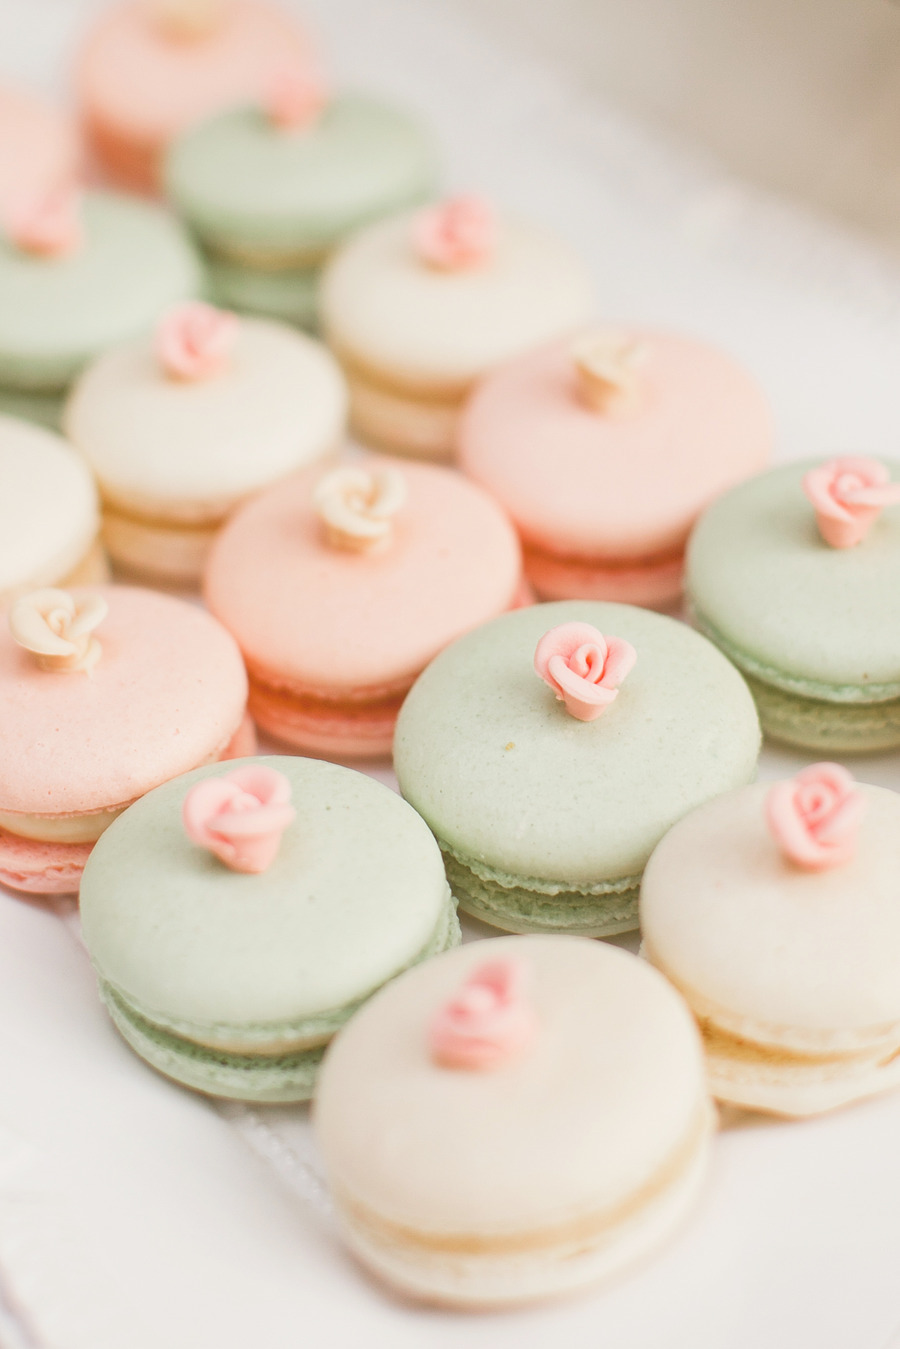 pink peach macarons rose - photo #14